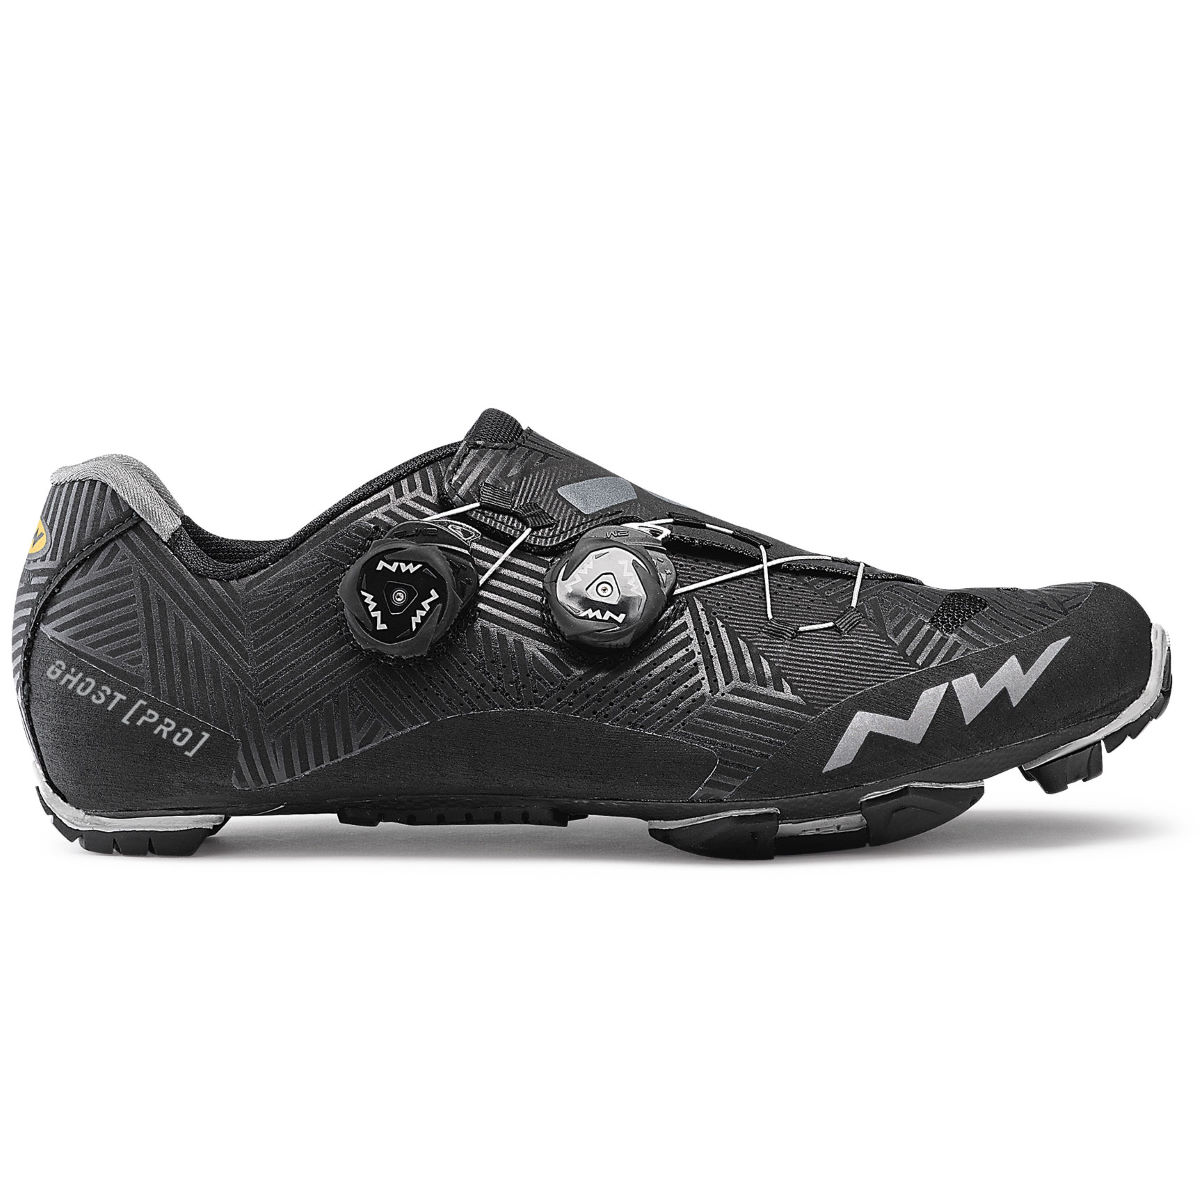 Northwave Northwave Ghost Pro MTB Shoes   Cycling Shoes